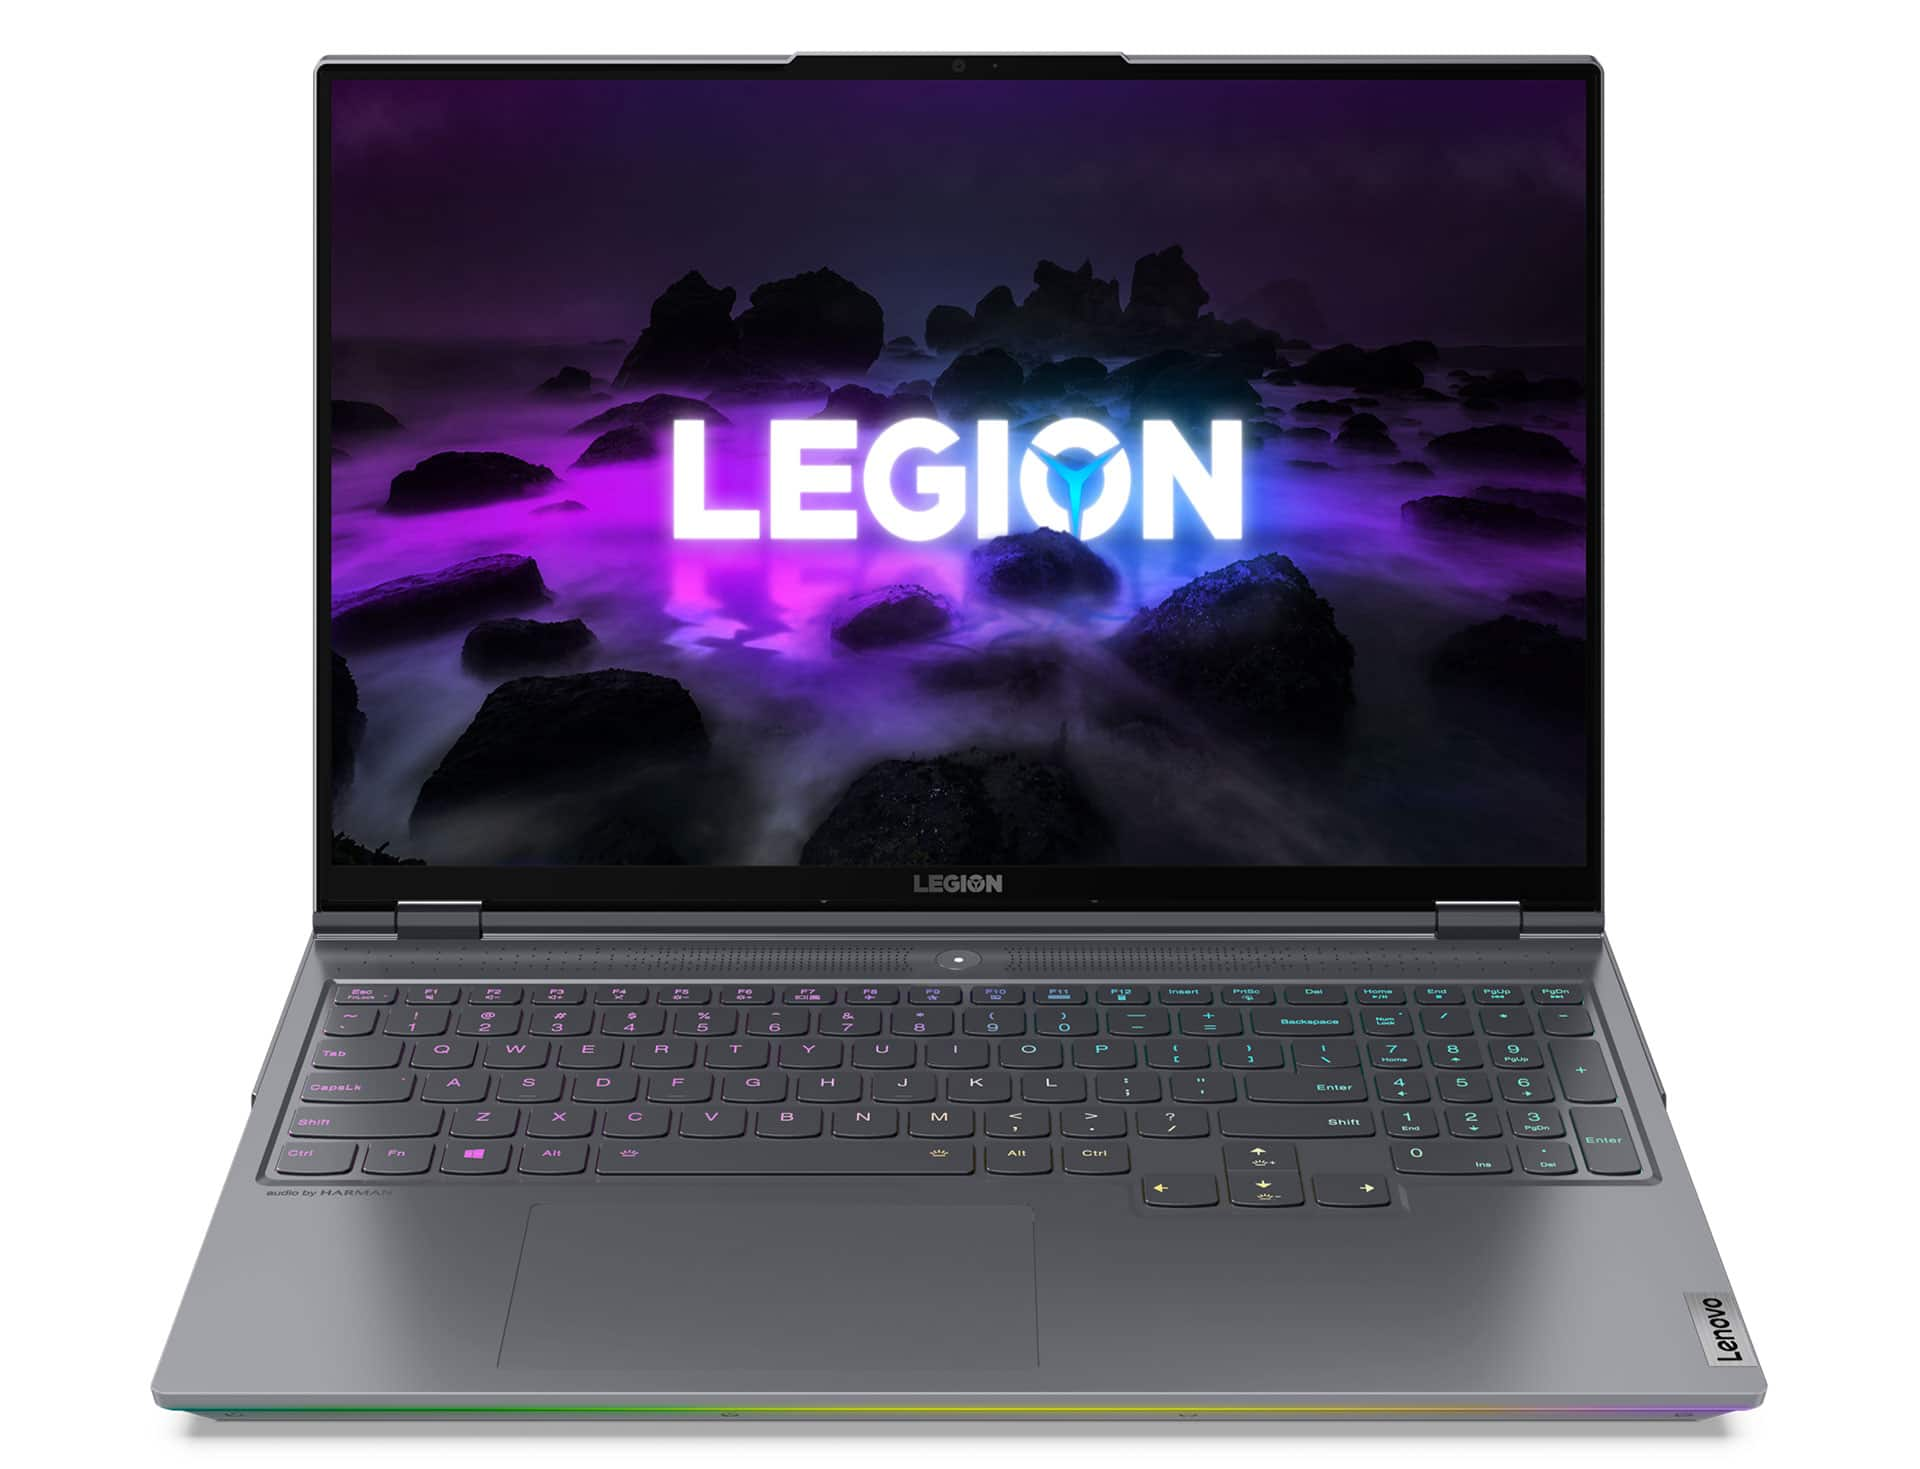 2021 Lenovo Legion 7 Top Tier Gaming Laptop With Amd Ryzen Rtx 3080 165 Hz Qhd Screen